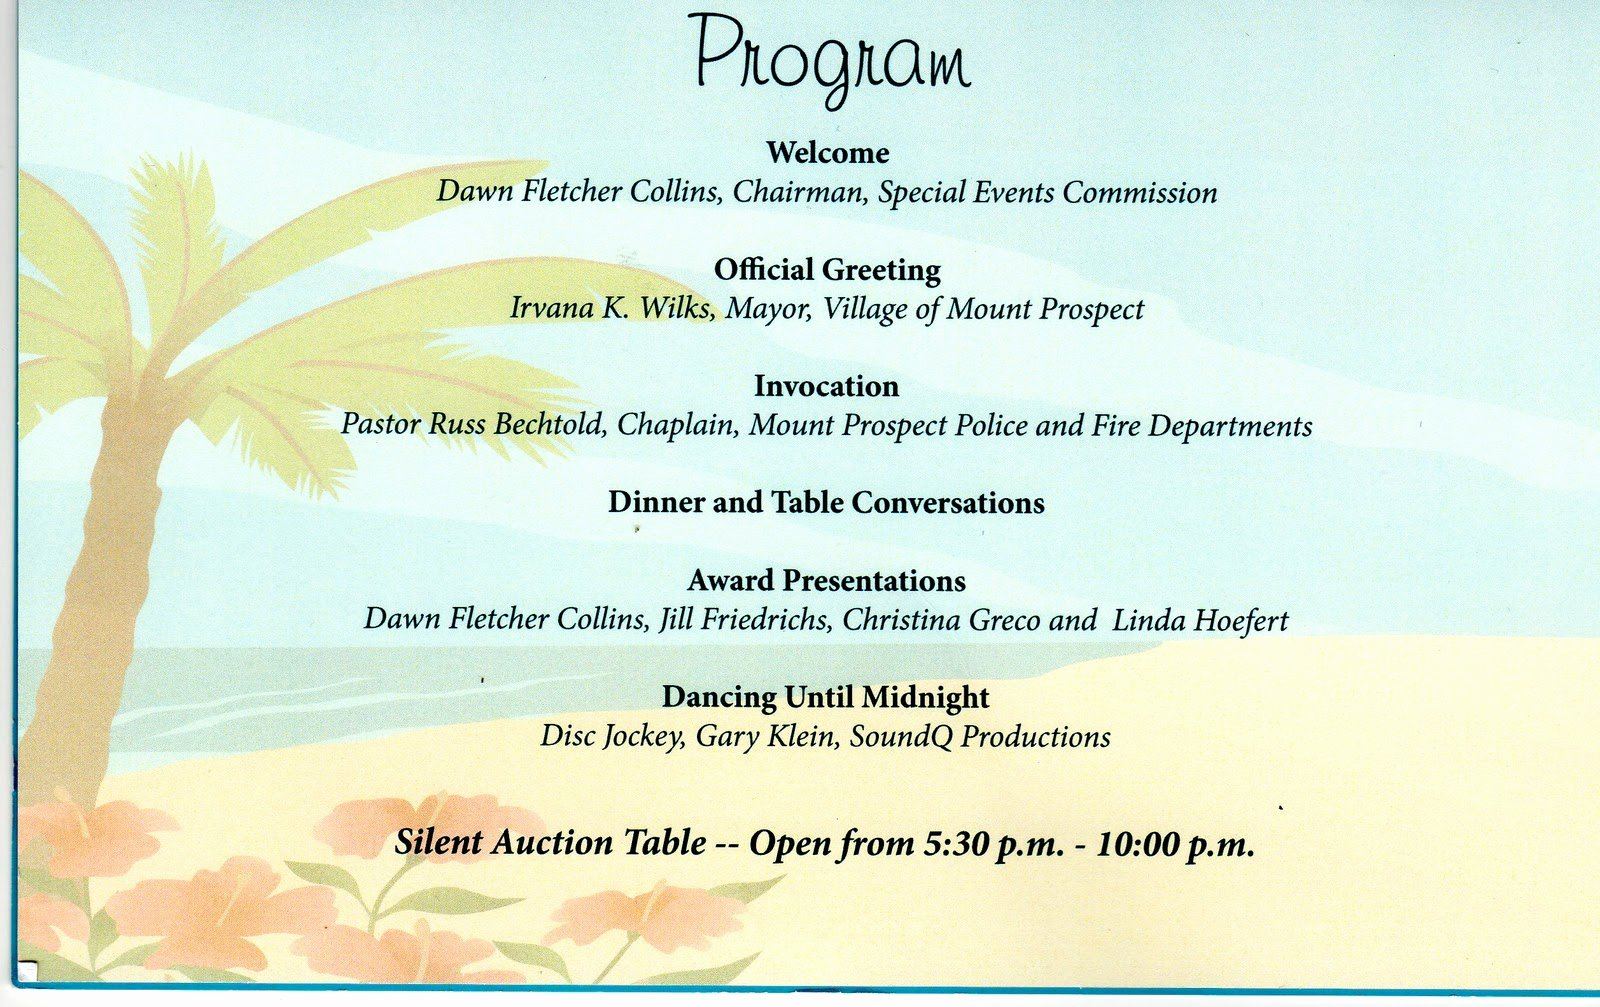 Retirement Party Program Template Luxury Reflections On My Journey the Village Of Mount Prospect